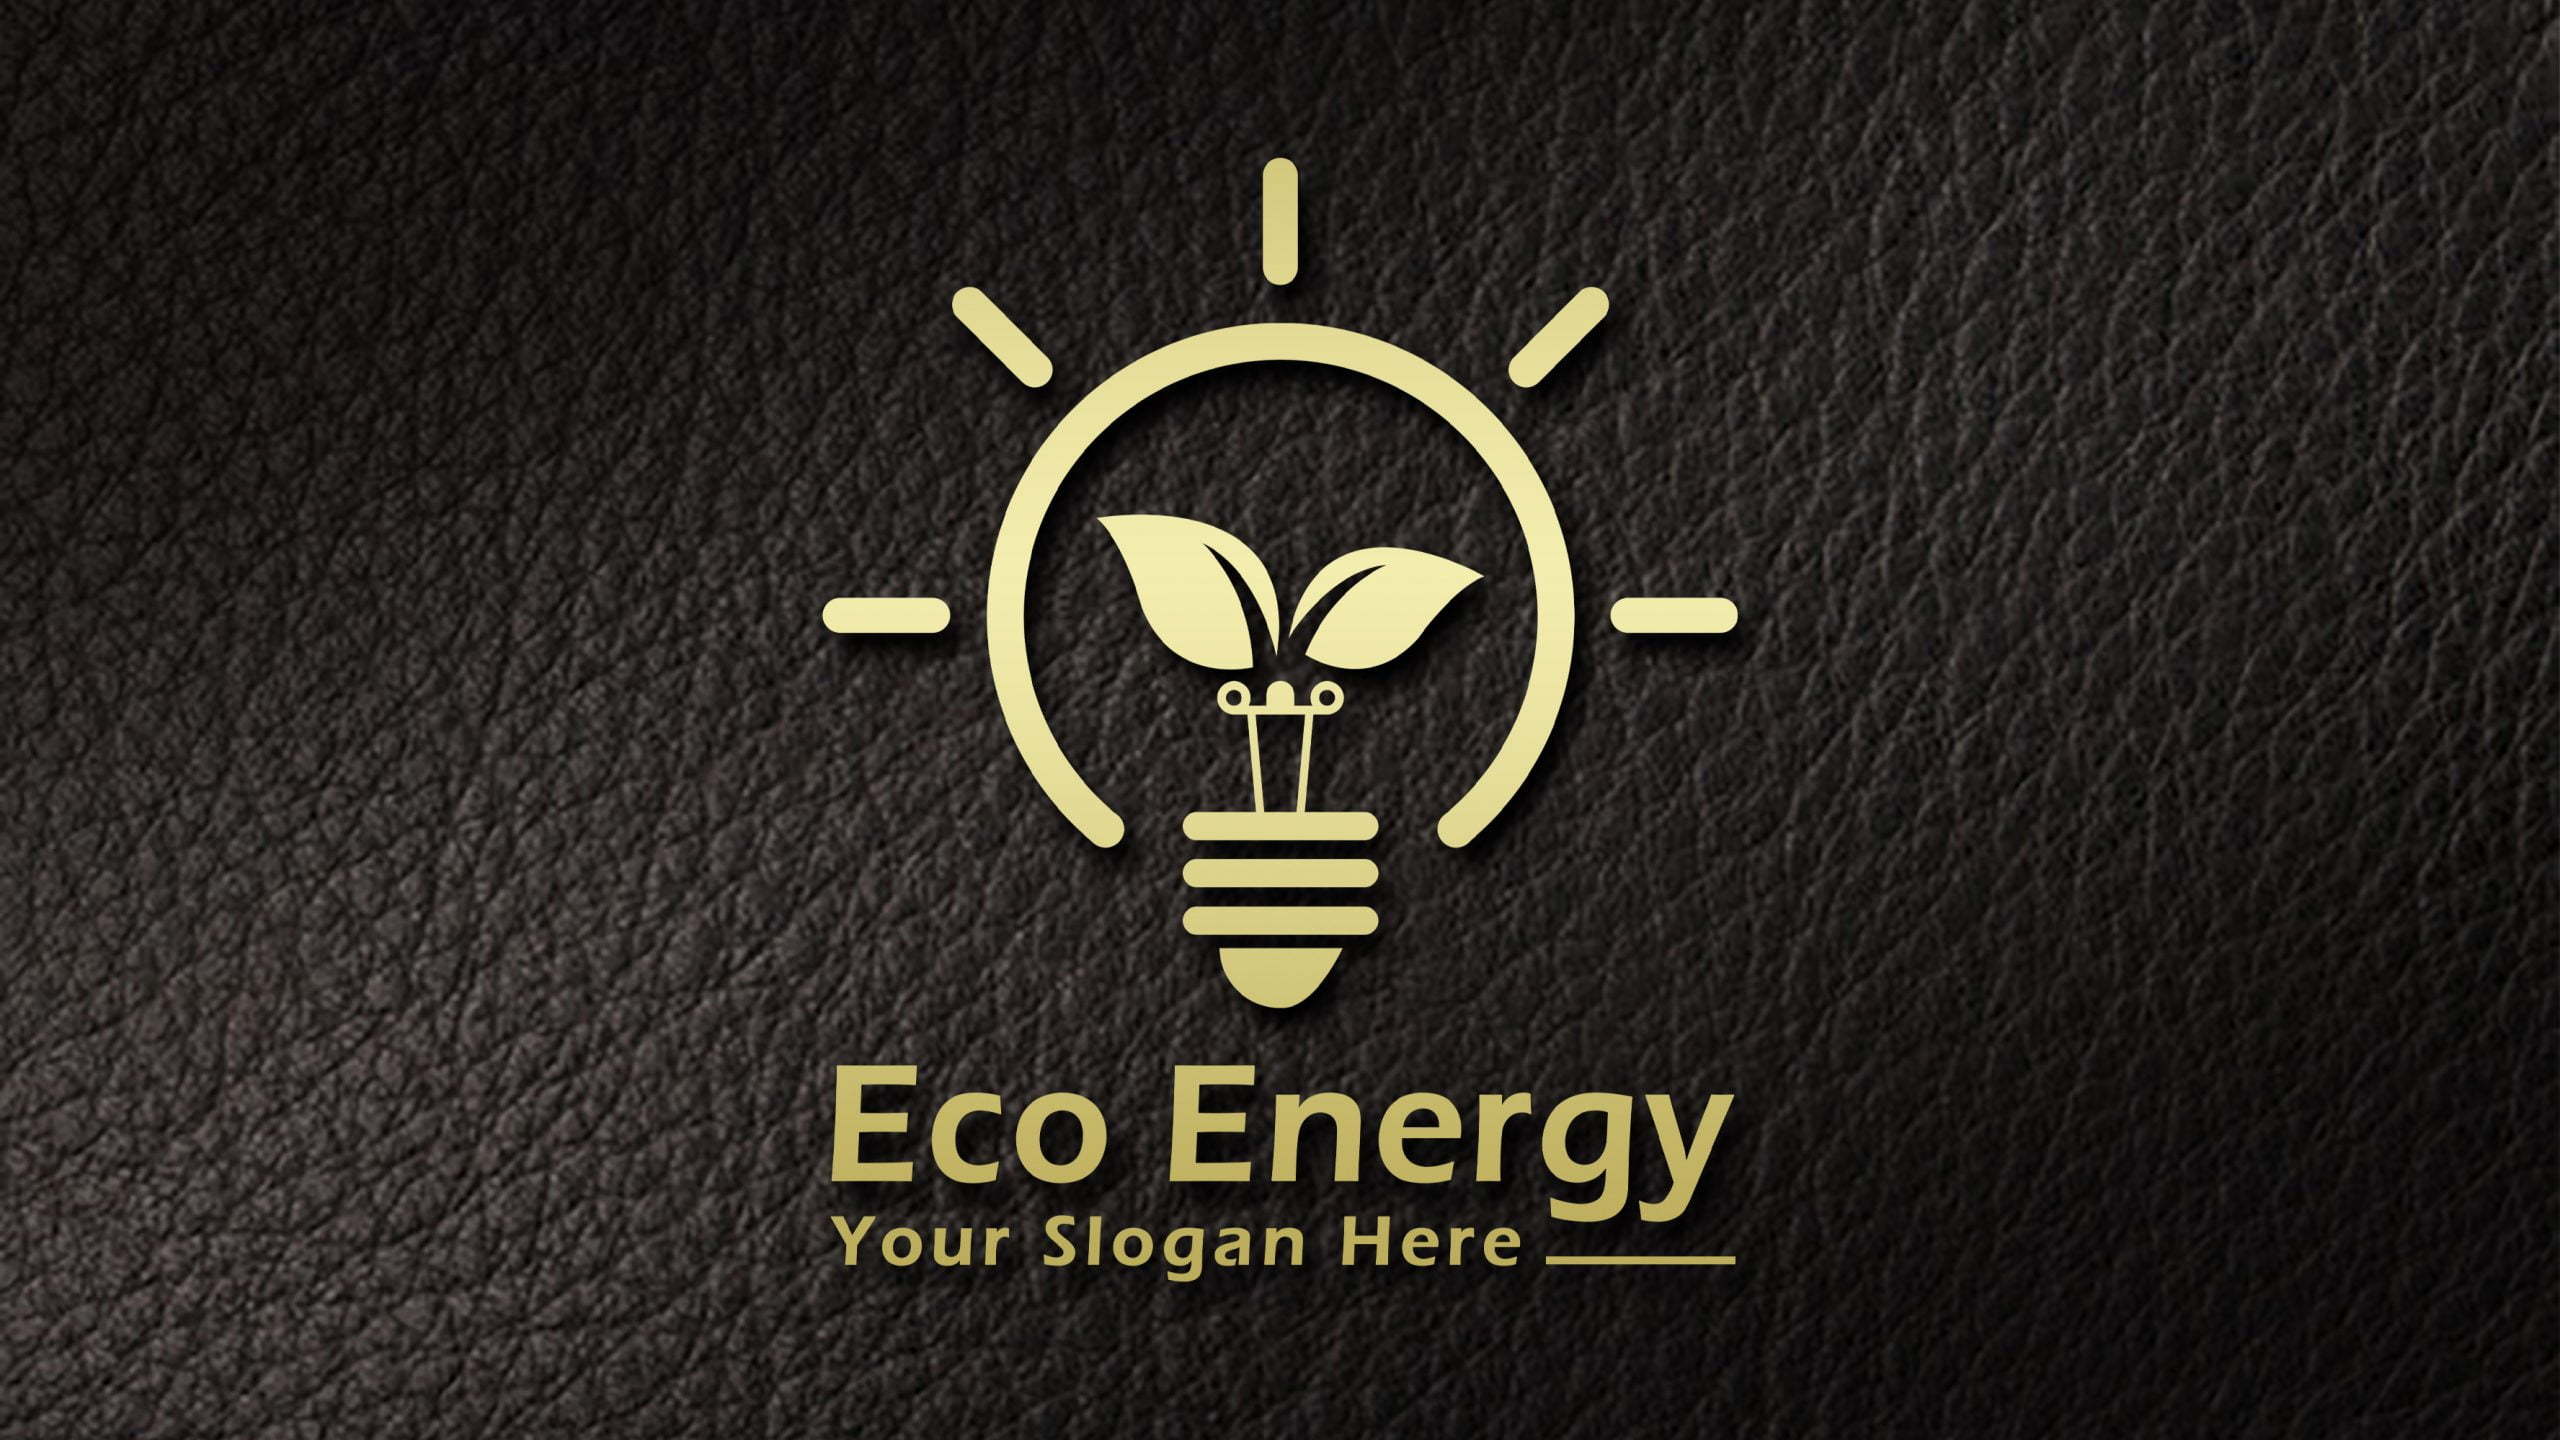 Free-Template-Eco-Energy-Light-Bulb-with-Leaves-Logo-Design